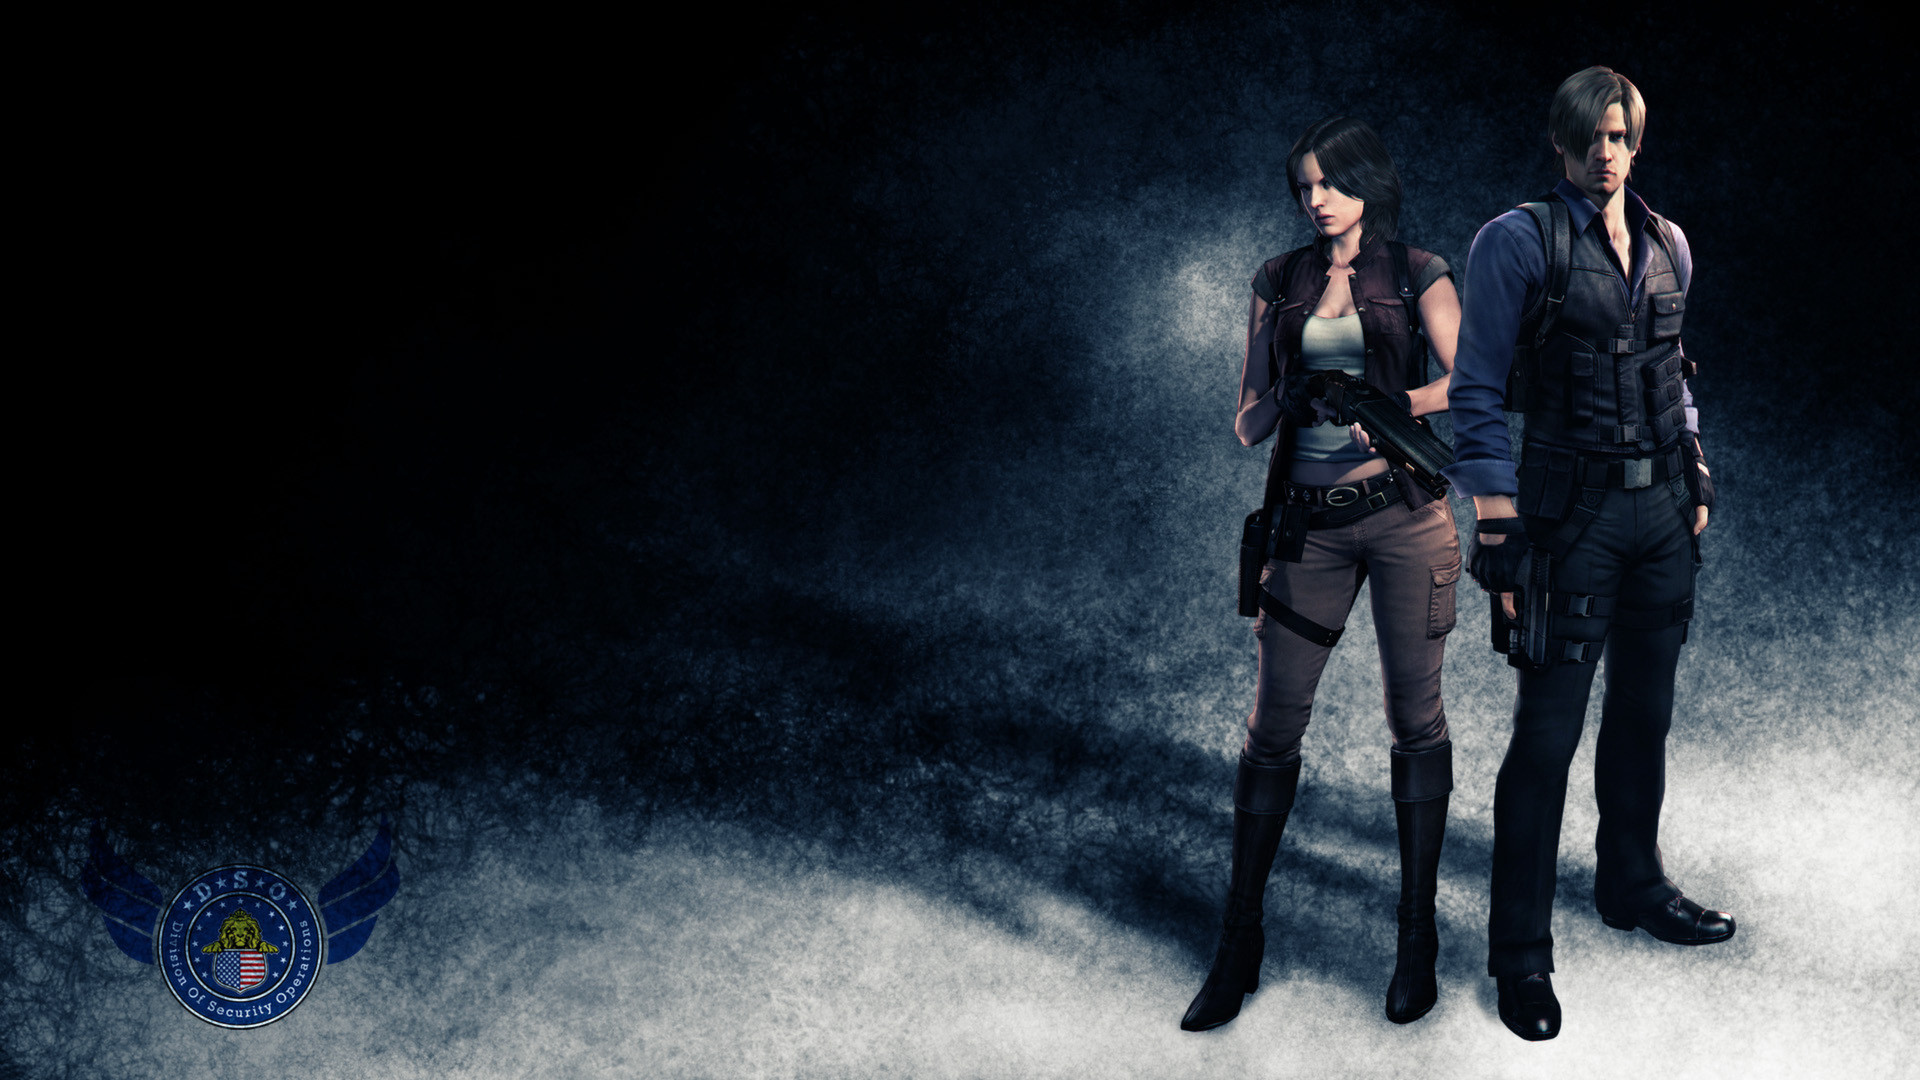 1920x1080 Resident Evil 4 All Characters